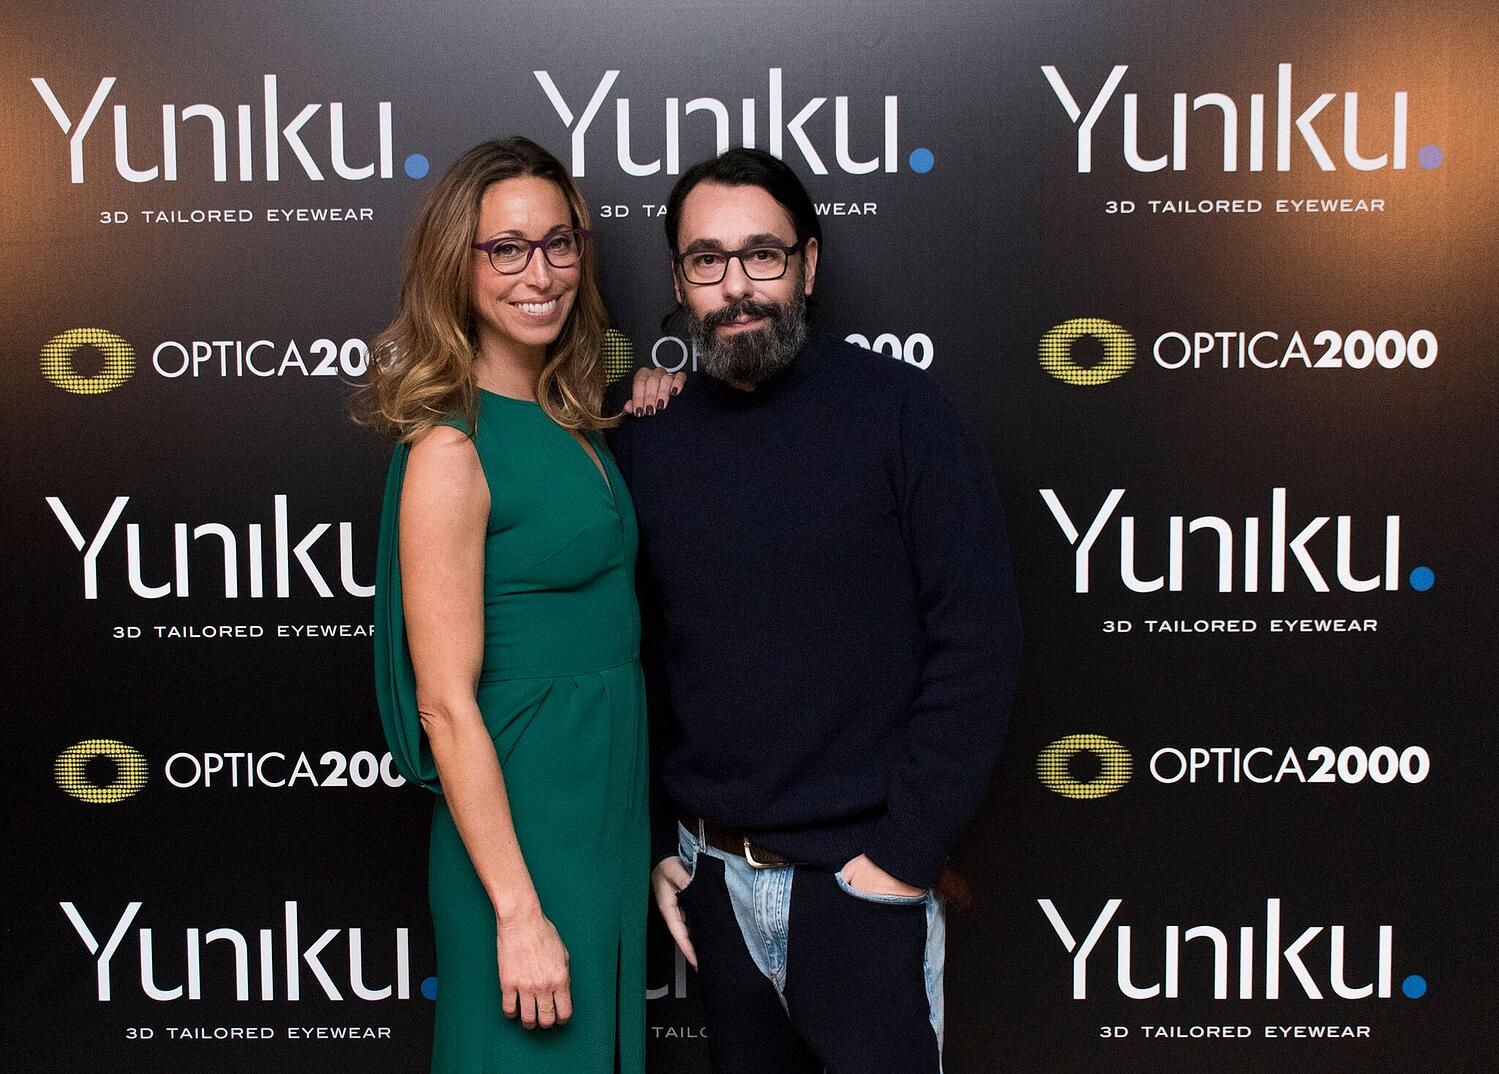 Yuniku Presentation Event in Spain